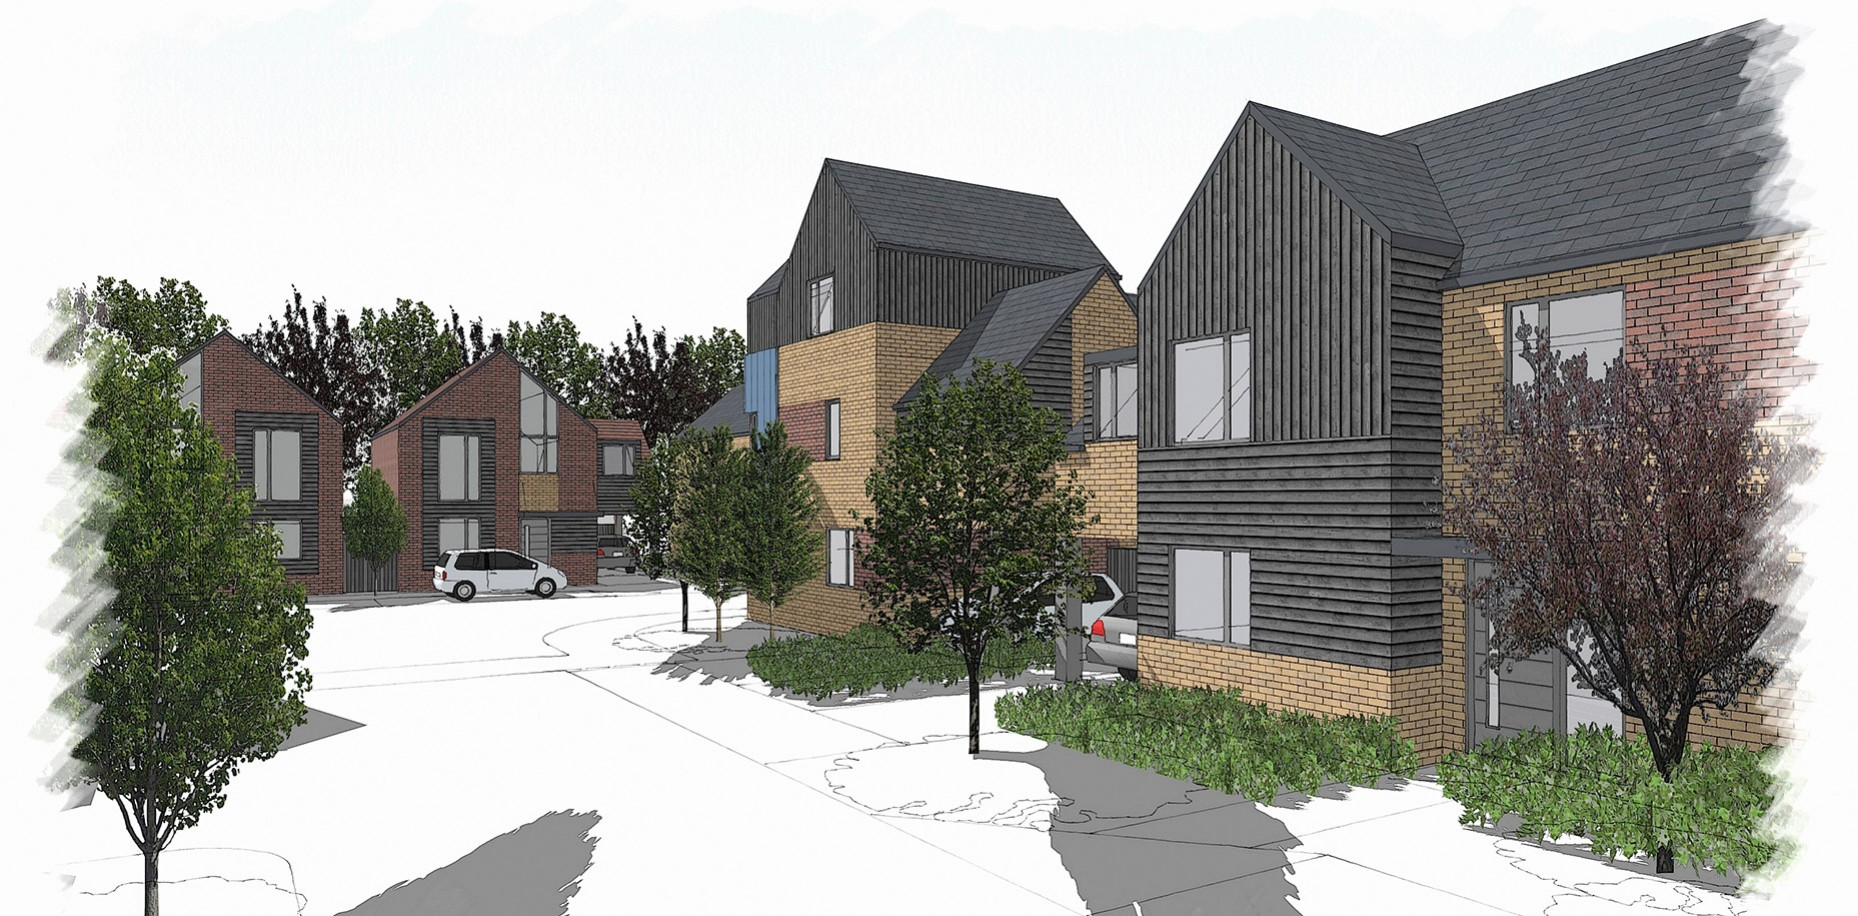 Planning Approved for 160 Houses On Former College Site, Ashford